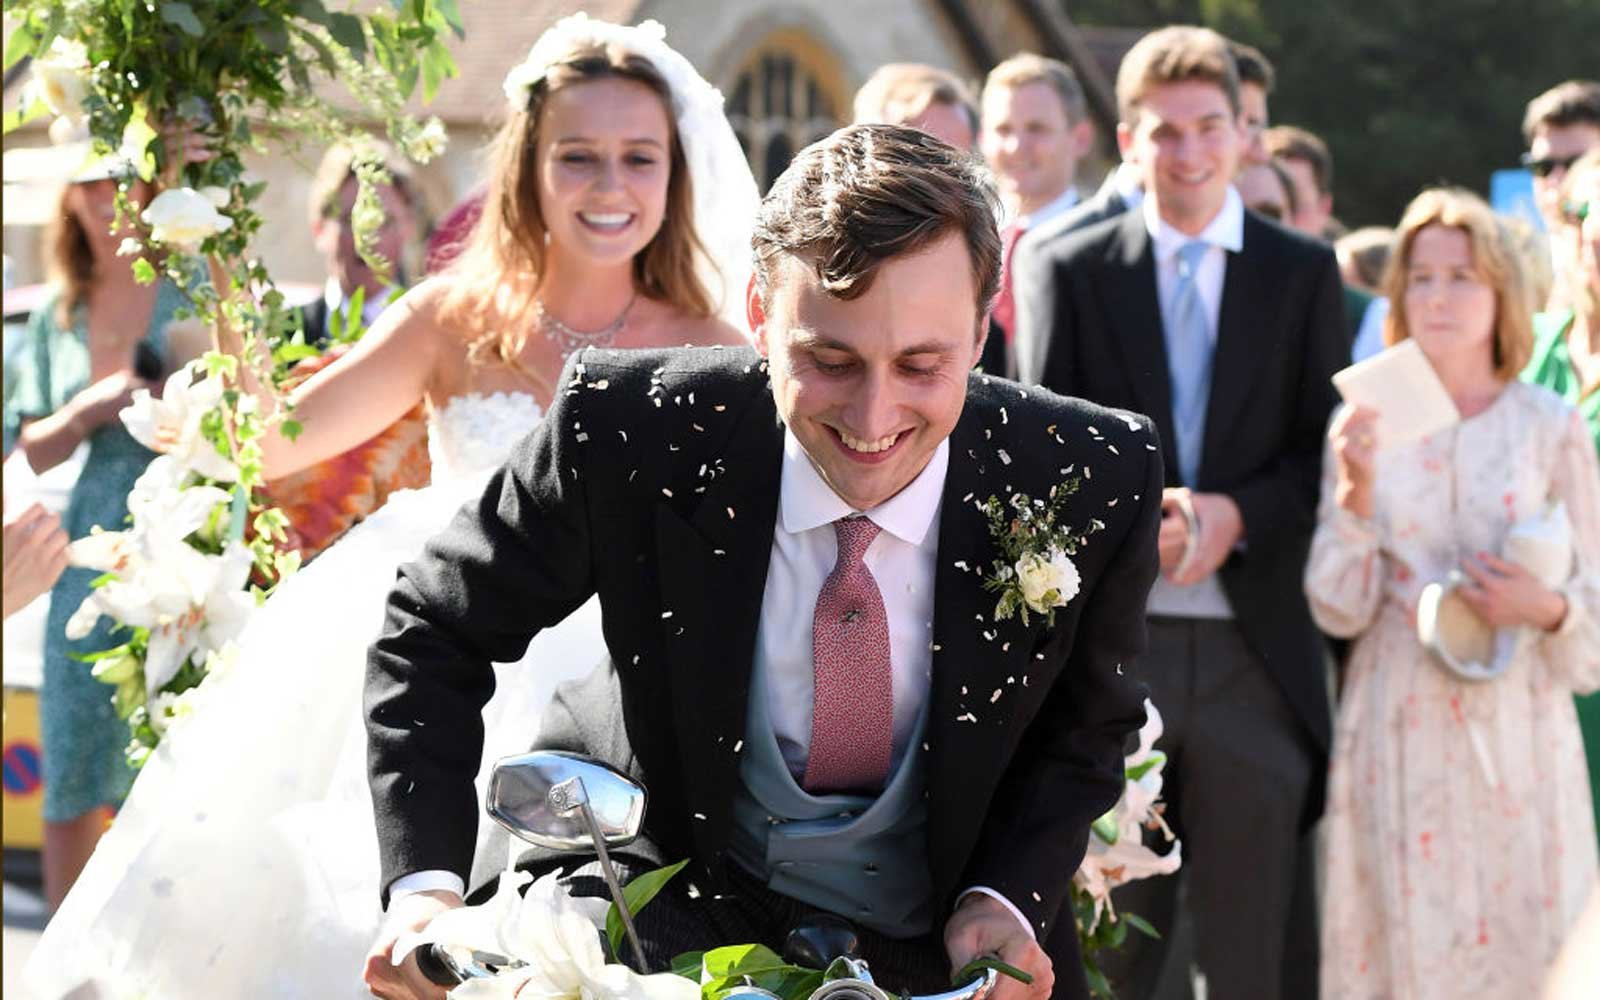 he wedding of Daisy Jenks and Charlie Van Straubenzee at Saint Mary The Virgin Church on August 4, 2018 in Frensham, United Kingdom